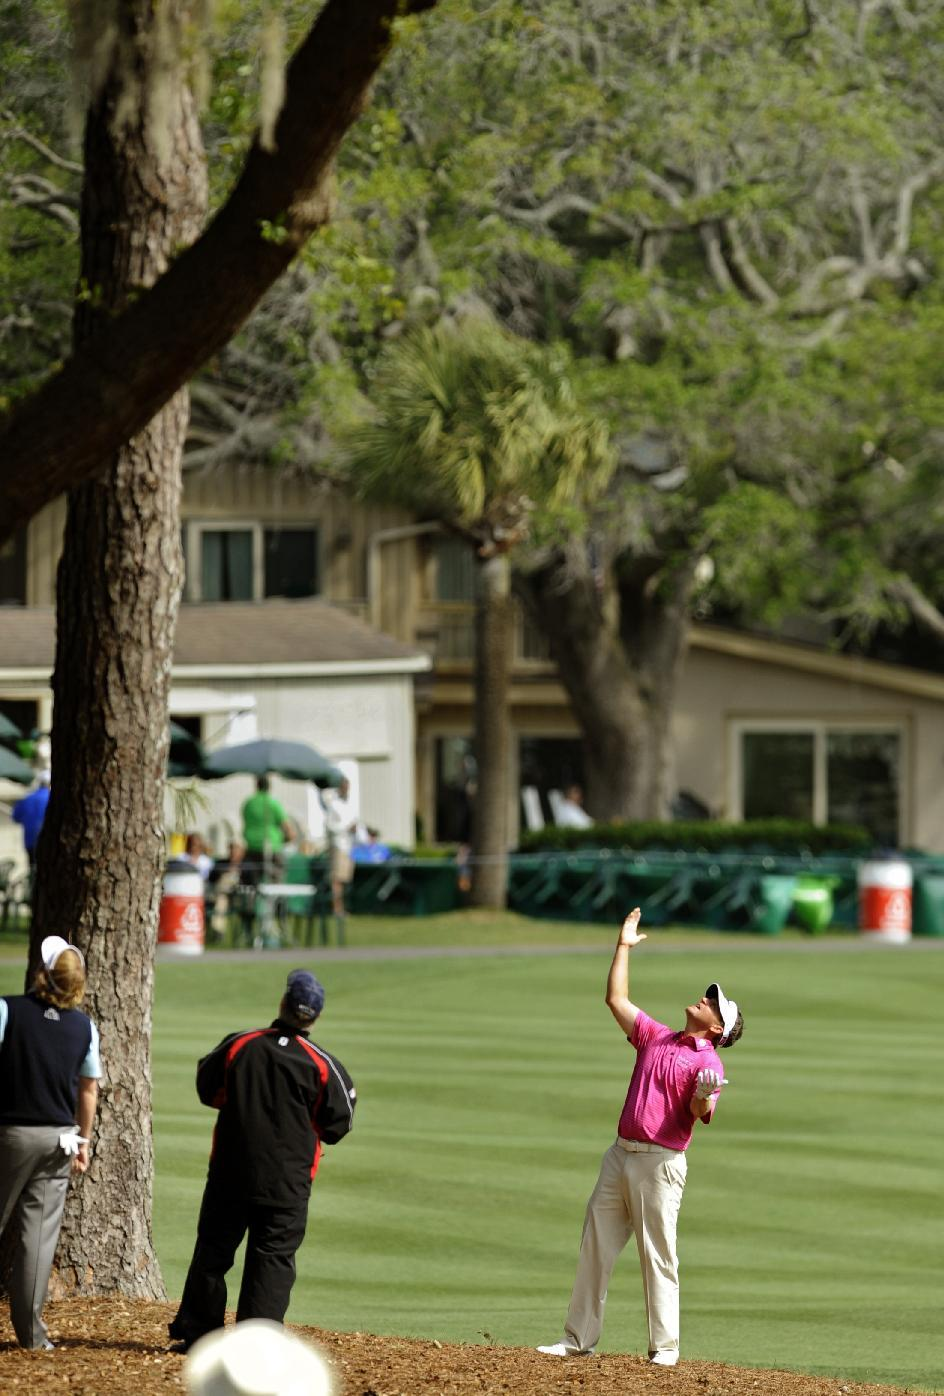 Jason Bohn, right, looks for his ball in a pine tree after his shot from the 10th fairway during the final round of the RBC Heritage golf tournament in Hilton Head Island, S.C., Sunday, April 21, 2013. (AP Photo/Stephen Morton)